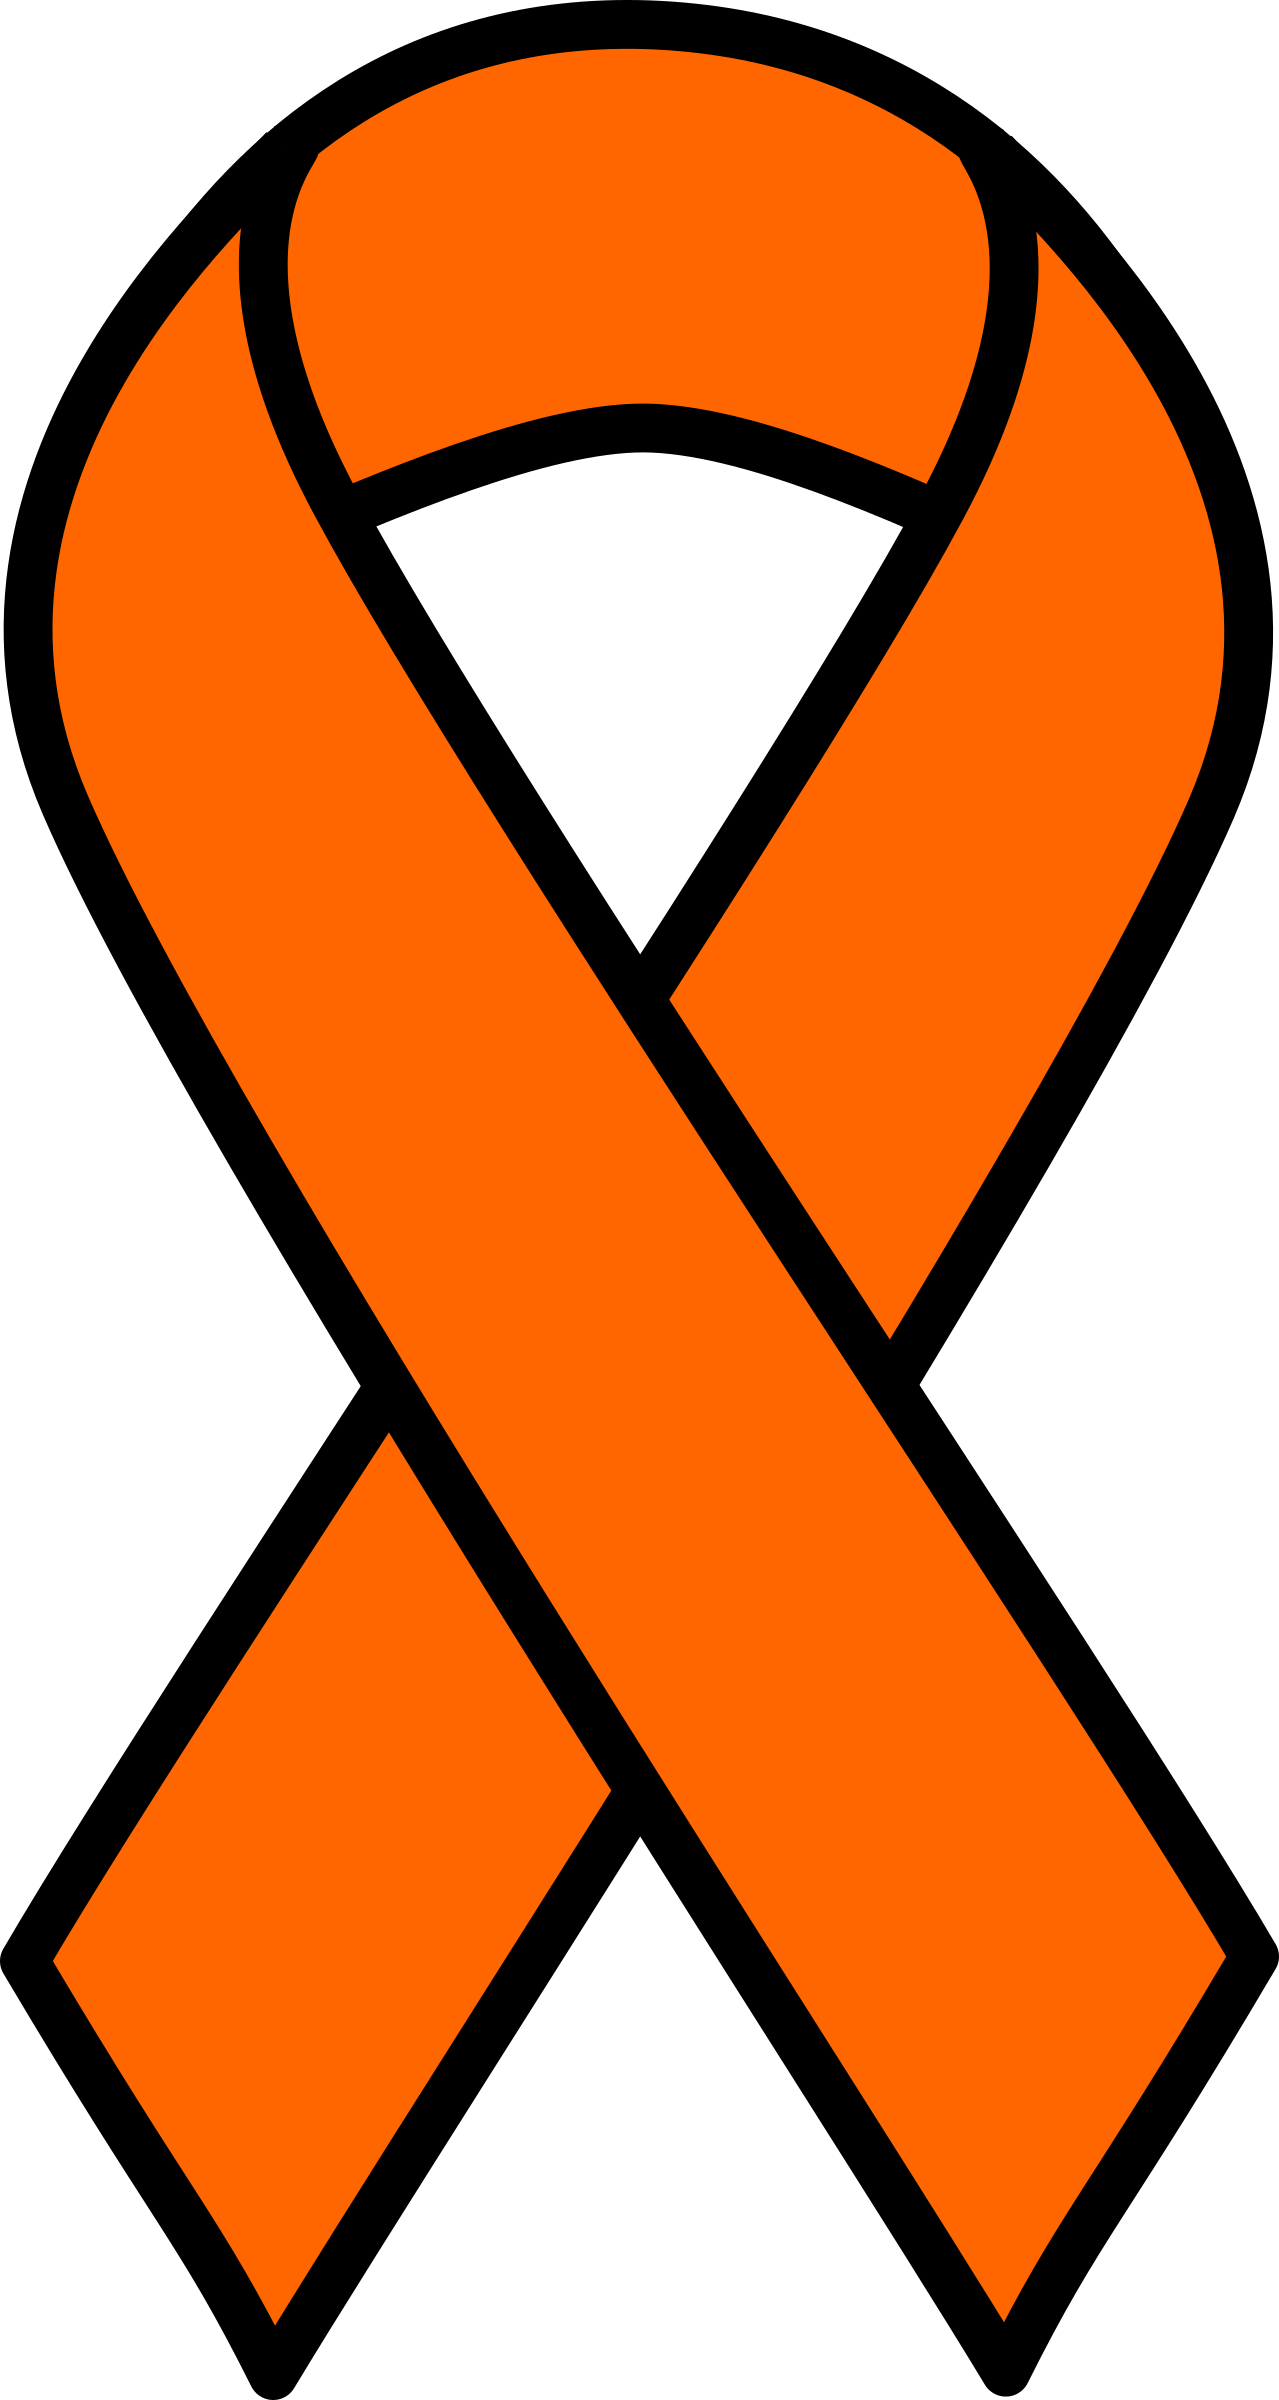 Orange Kidney Cancer and Leukemia Ribbon by barnheartowl